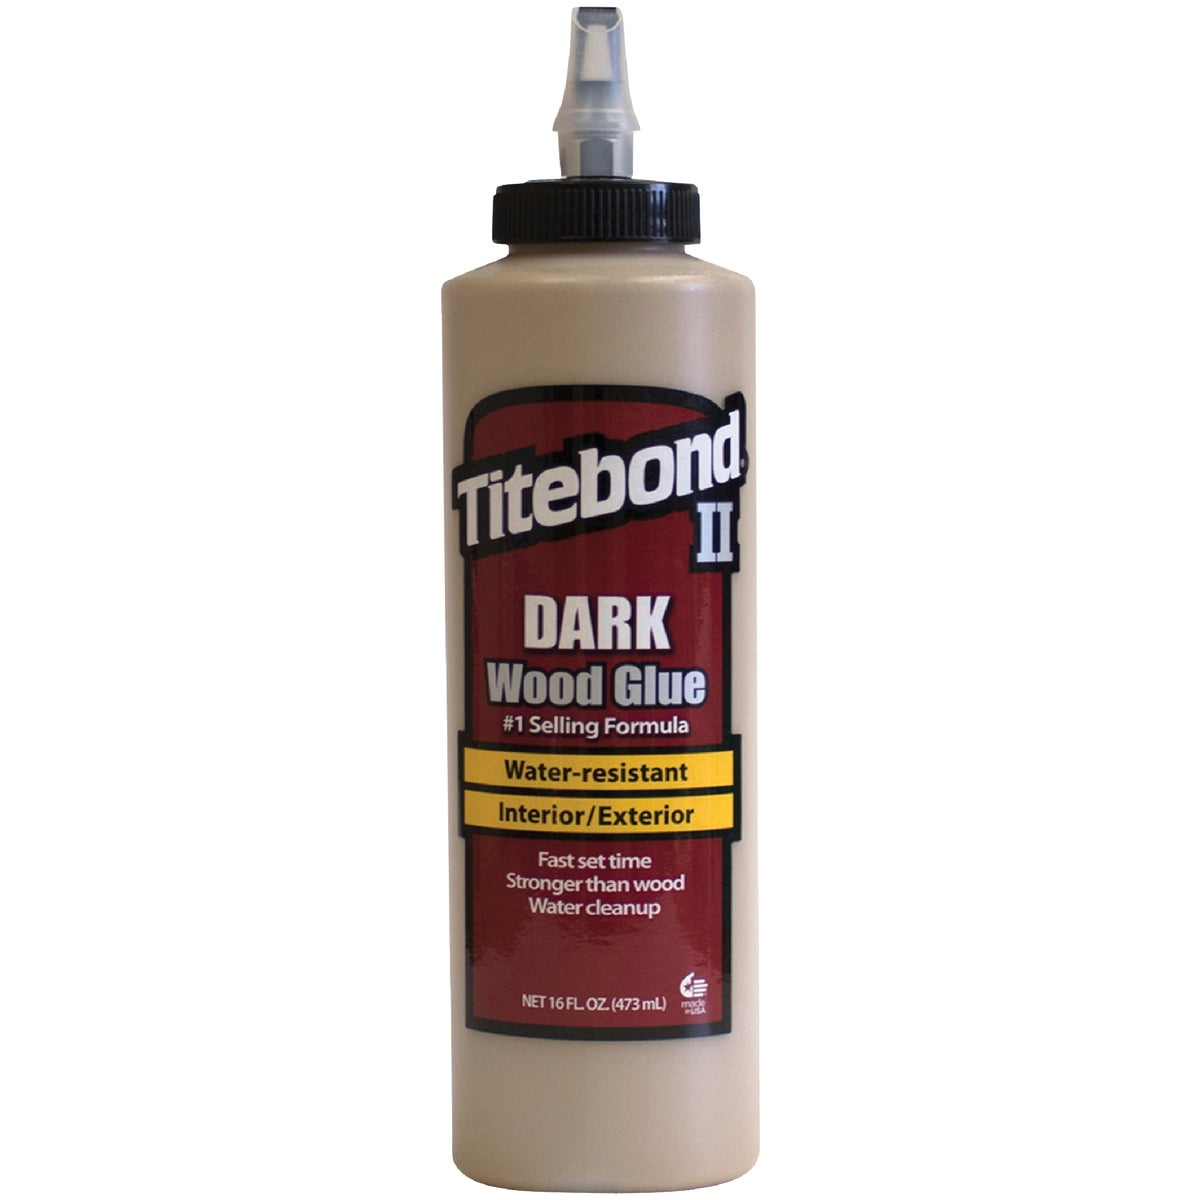 16OZ DARK WOOD GLUE - 3704 by Franklin Interl